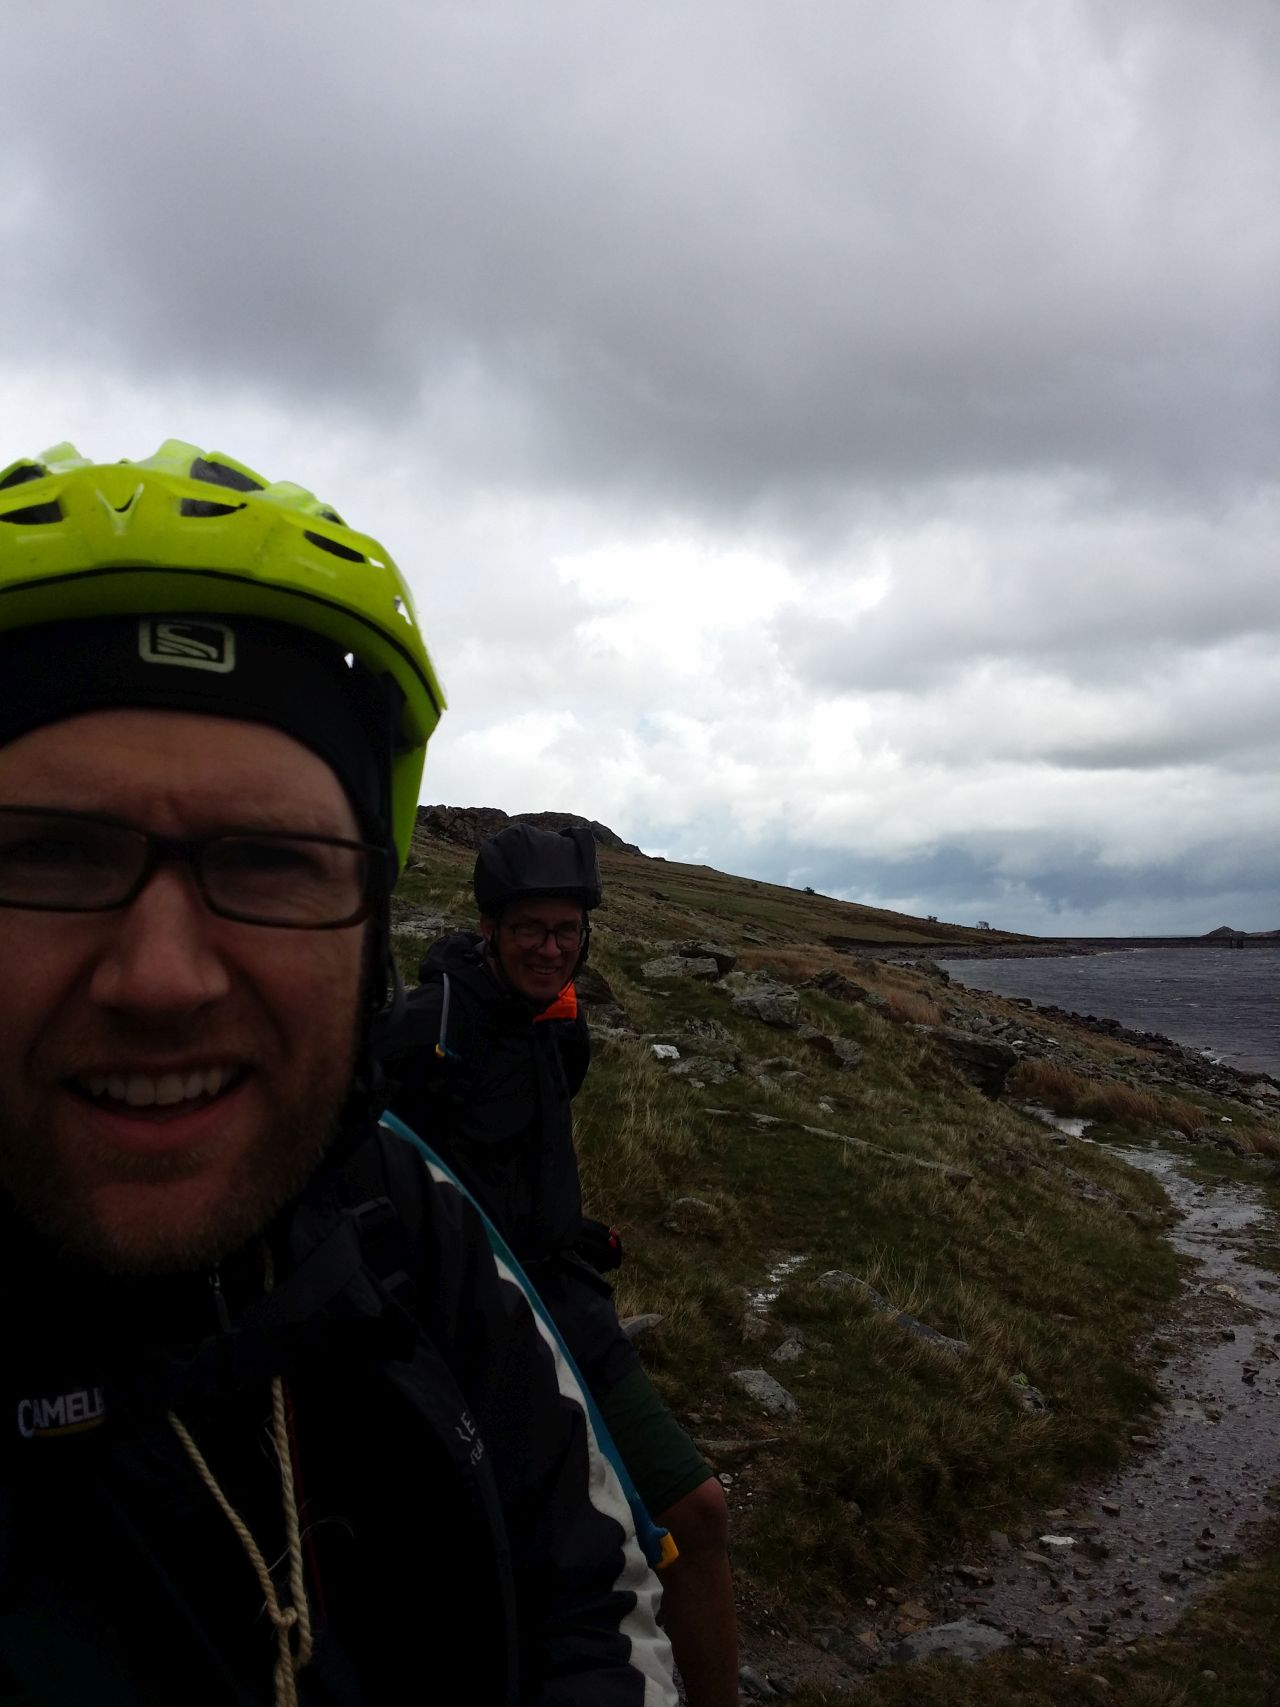 Day 1 - In gale force head winds and driving rain along Llyn Cowlyd reservoir